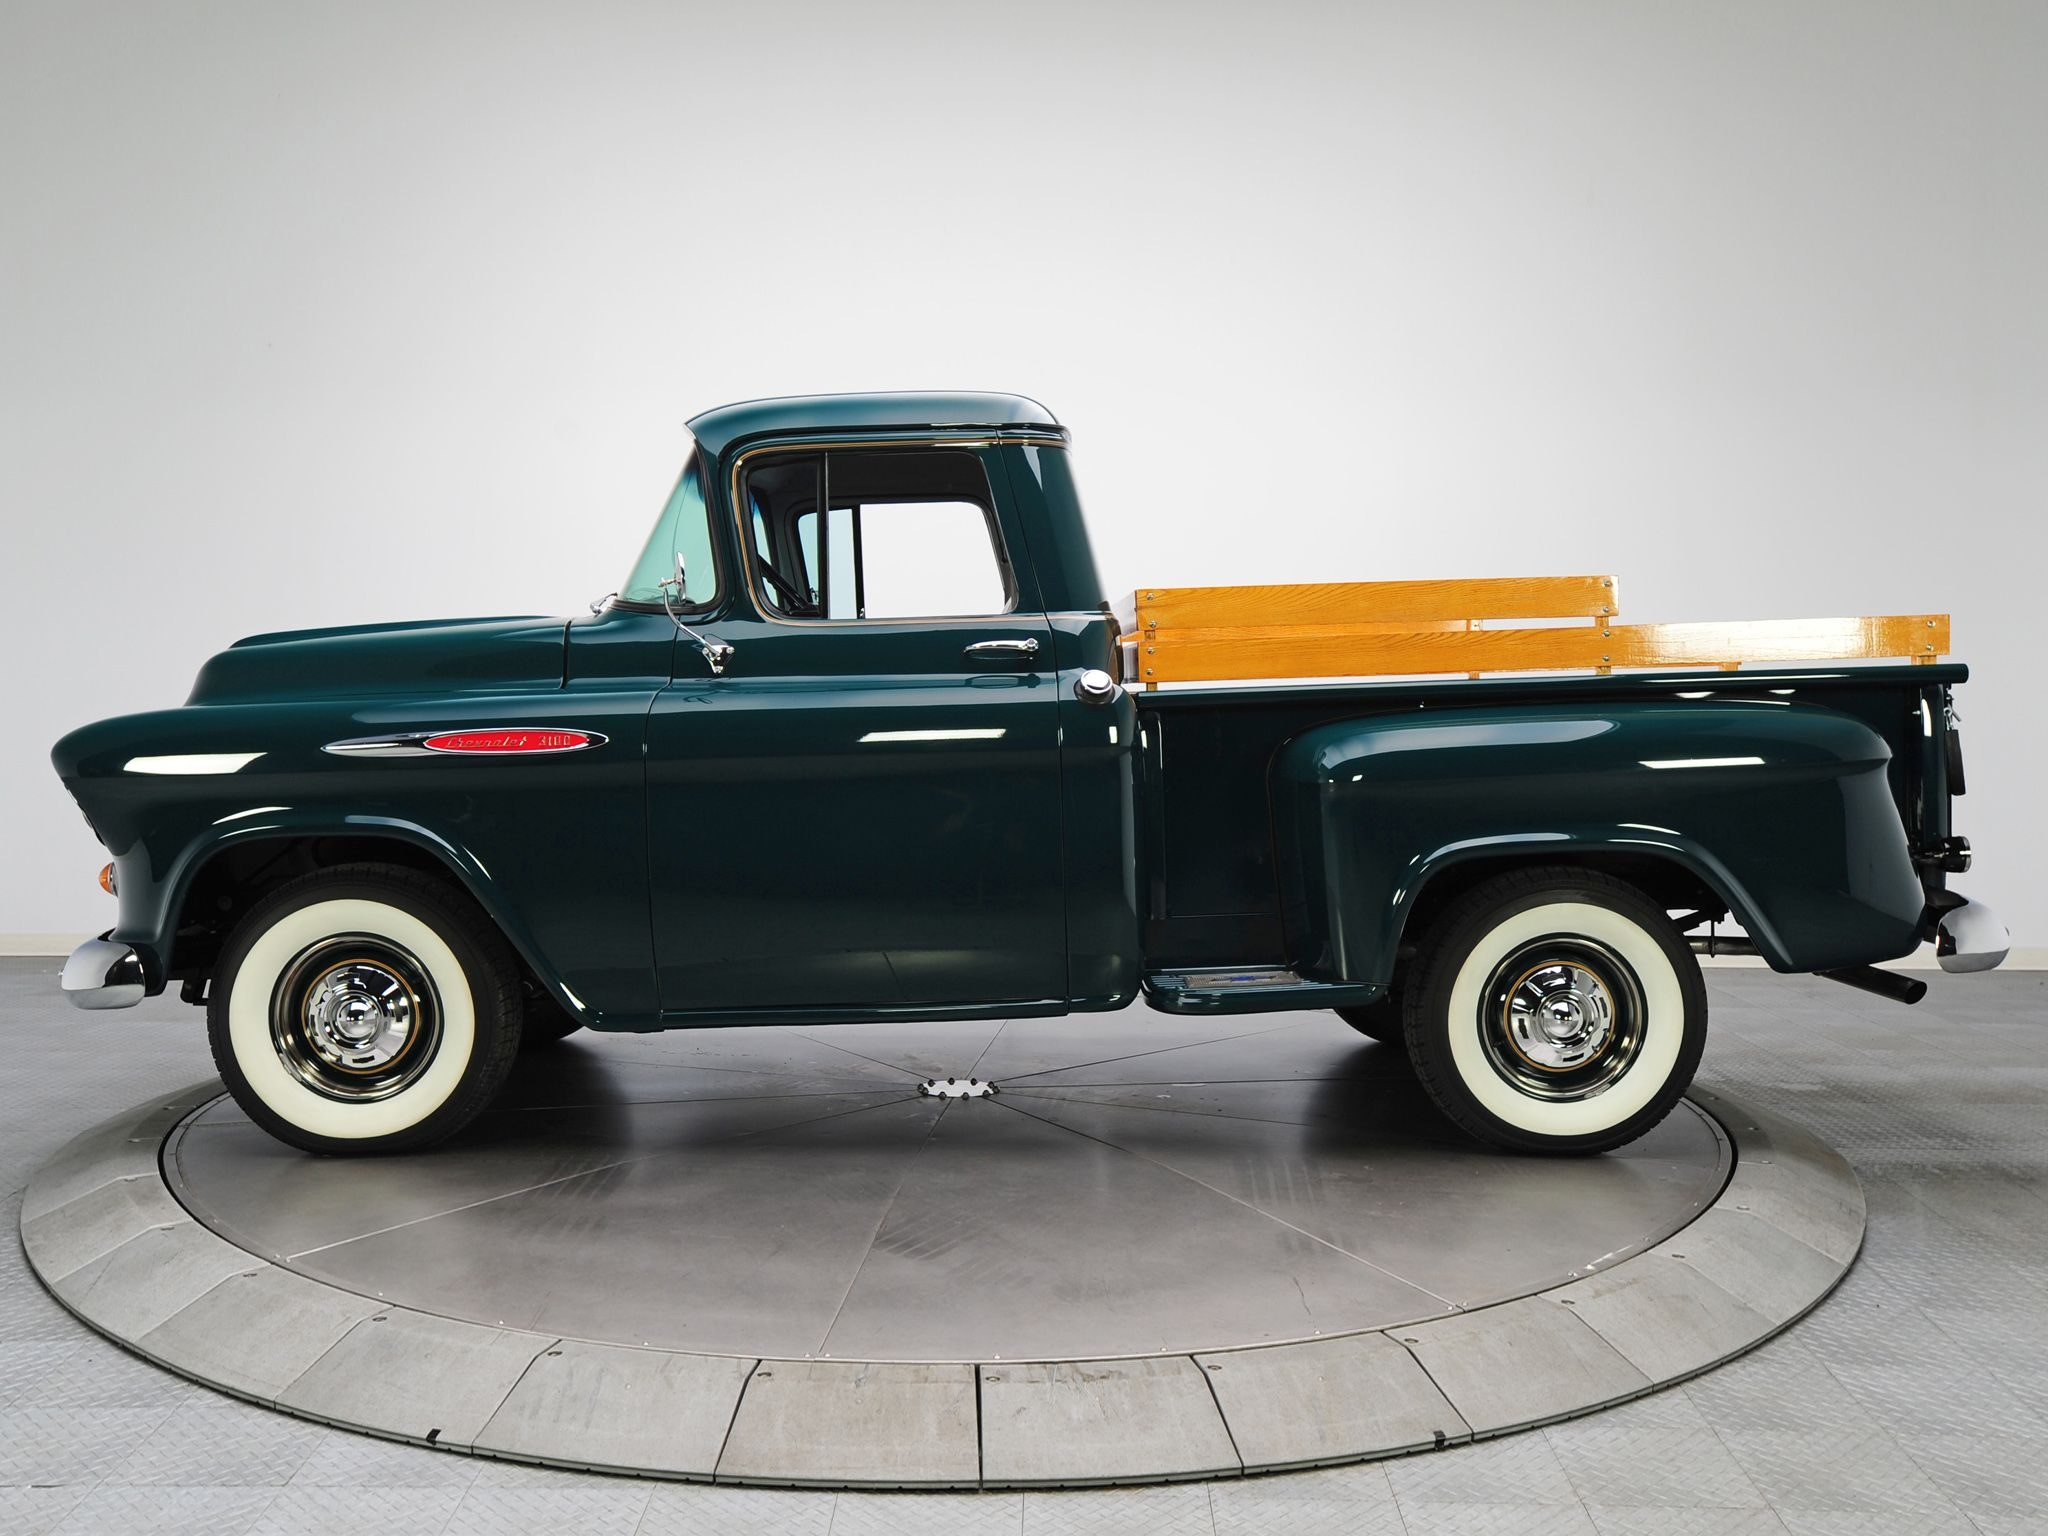 1957 Chevrolet 3100 Stepside Pickup Forest Green Chevy Pick Up Truck With White Wall Tires Trucks Chevy Trucks Classic Cars Trucks